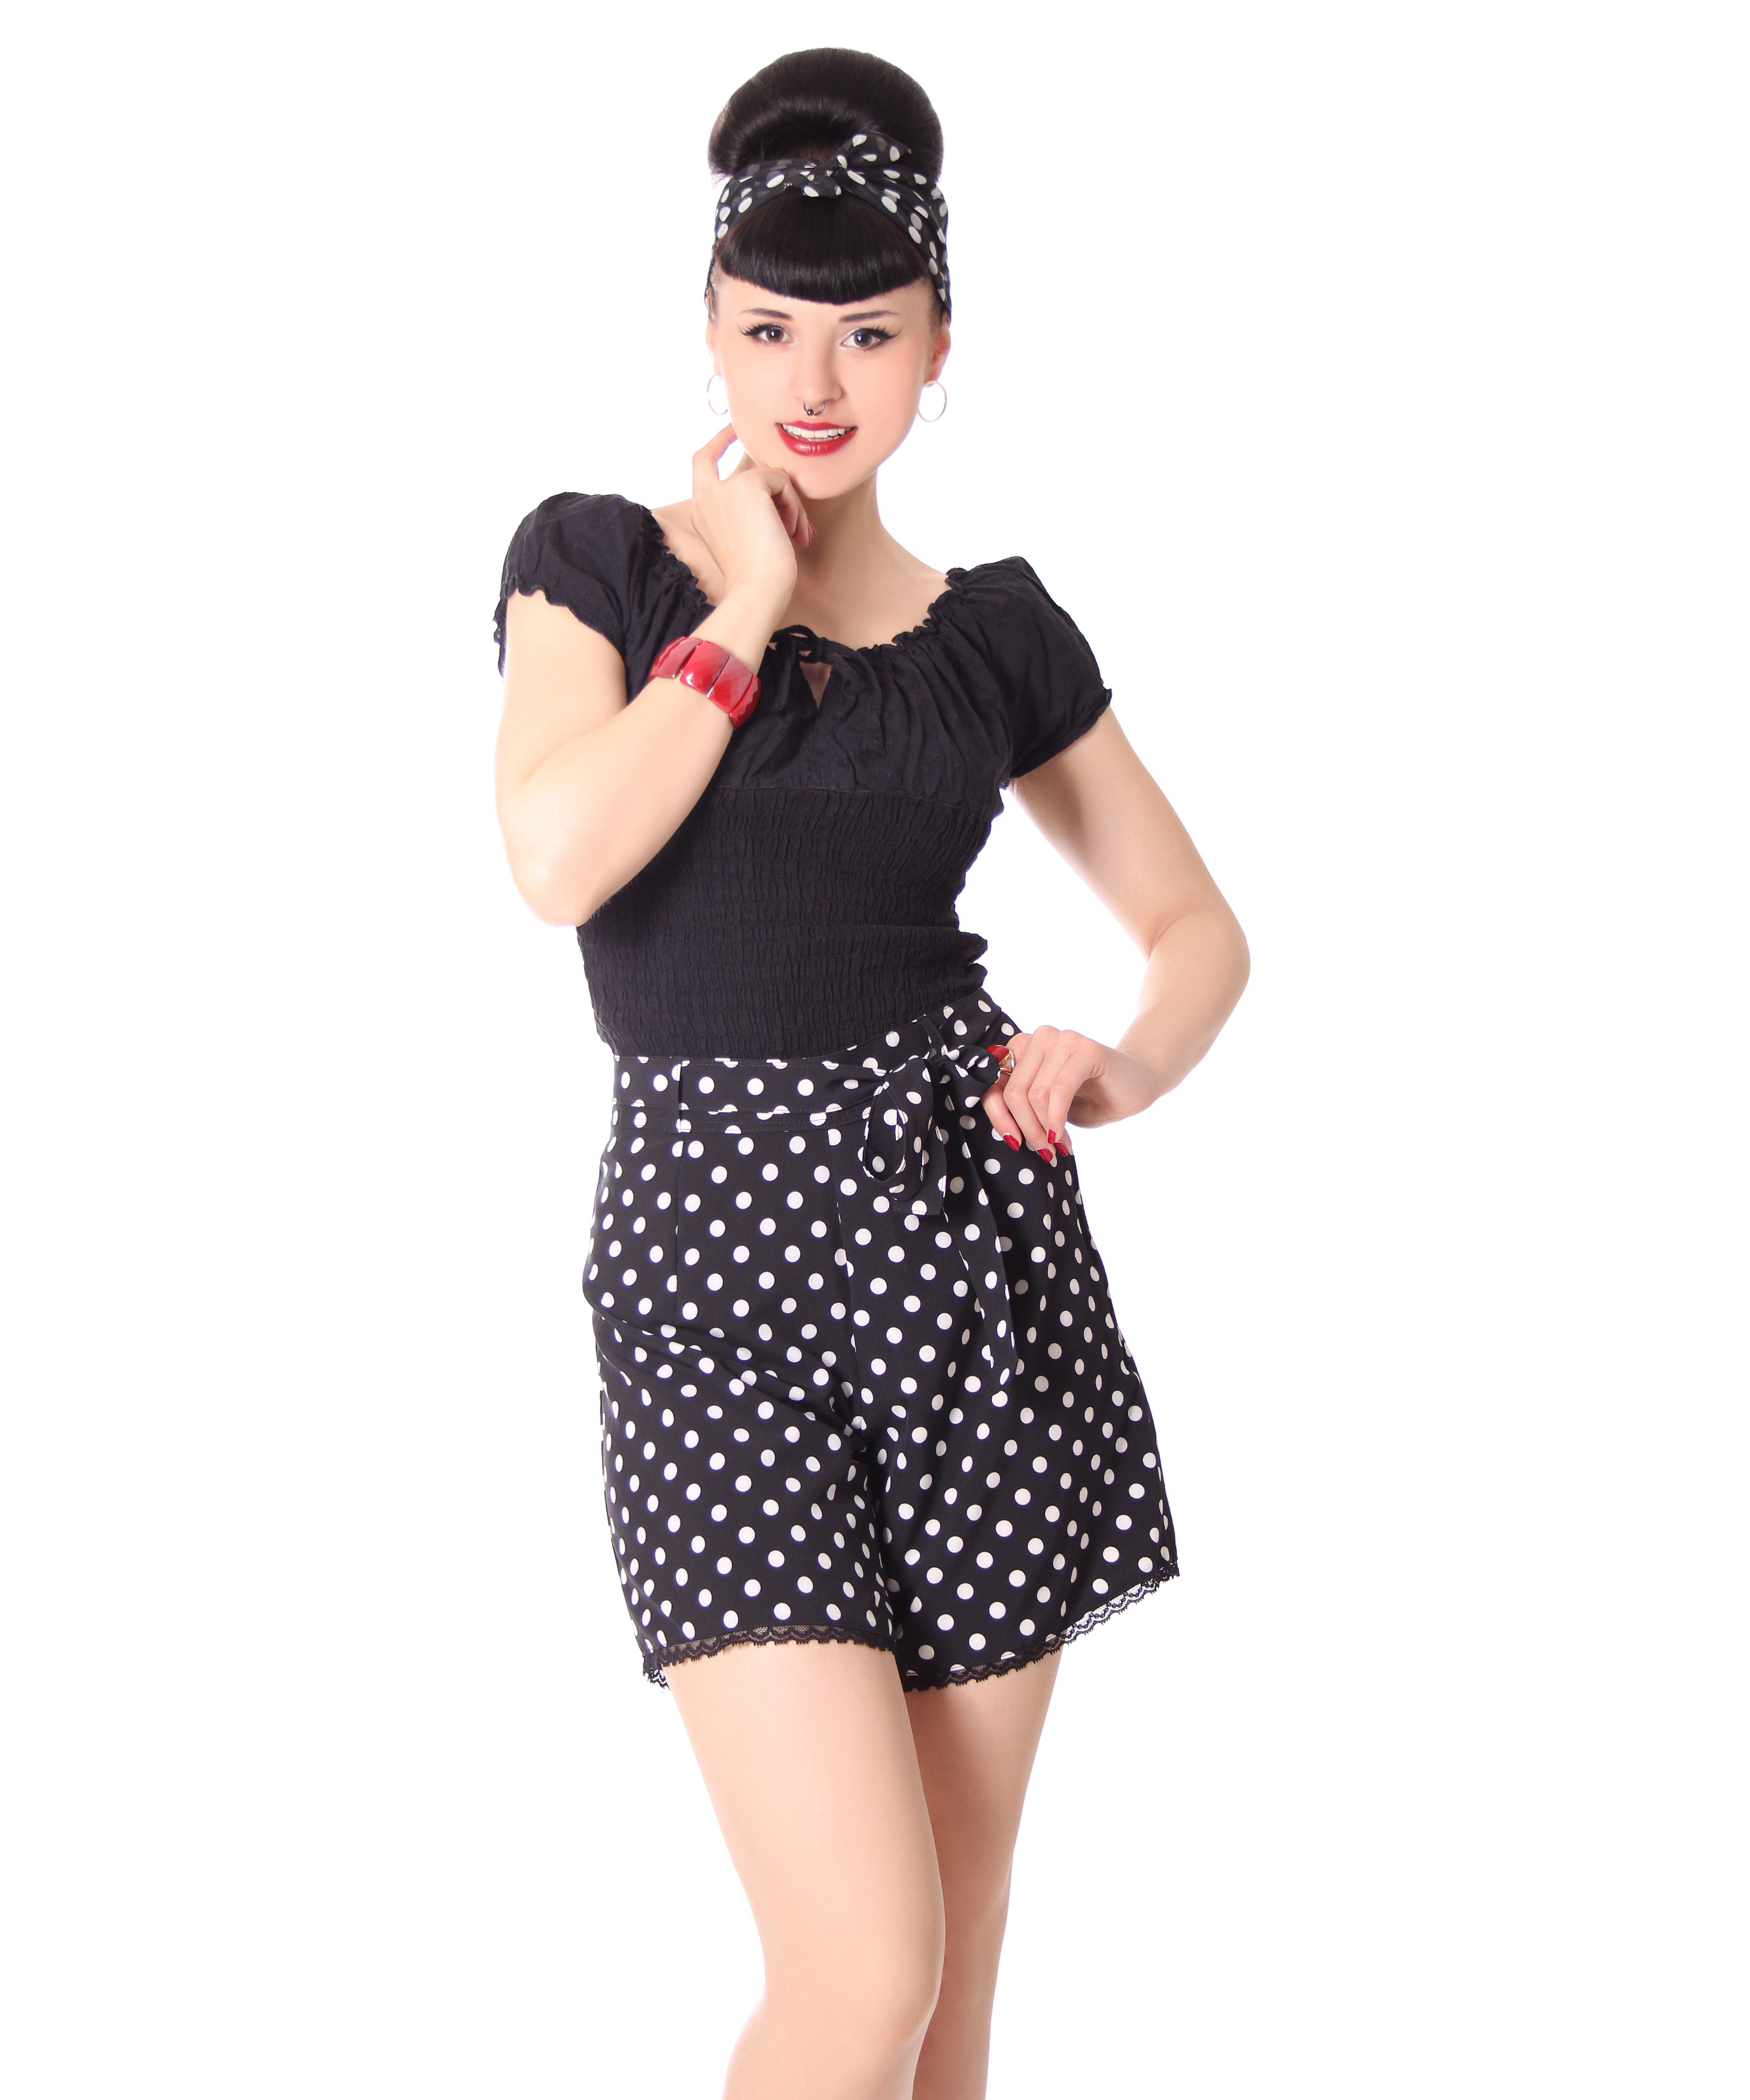 laudine 50er jahre retro high waist polka dots sommer. Black Bedroom Furniture Sets. Home Design Ideas